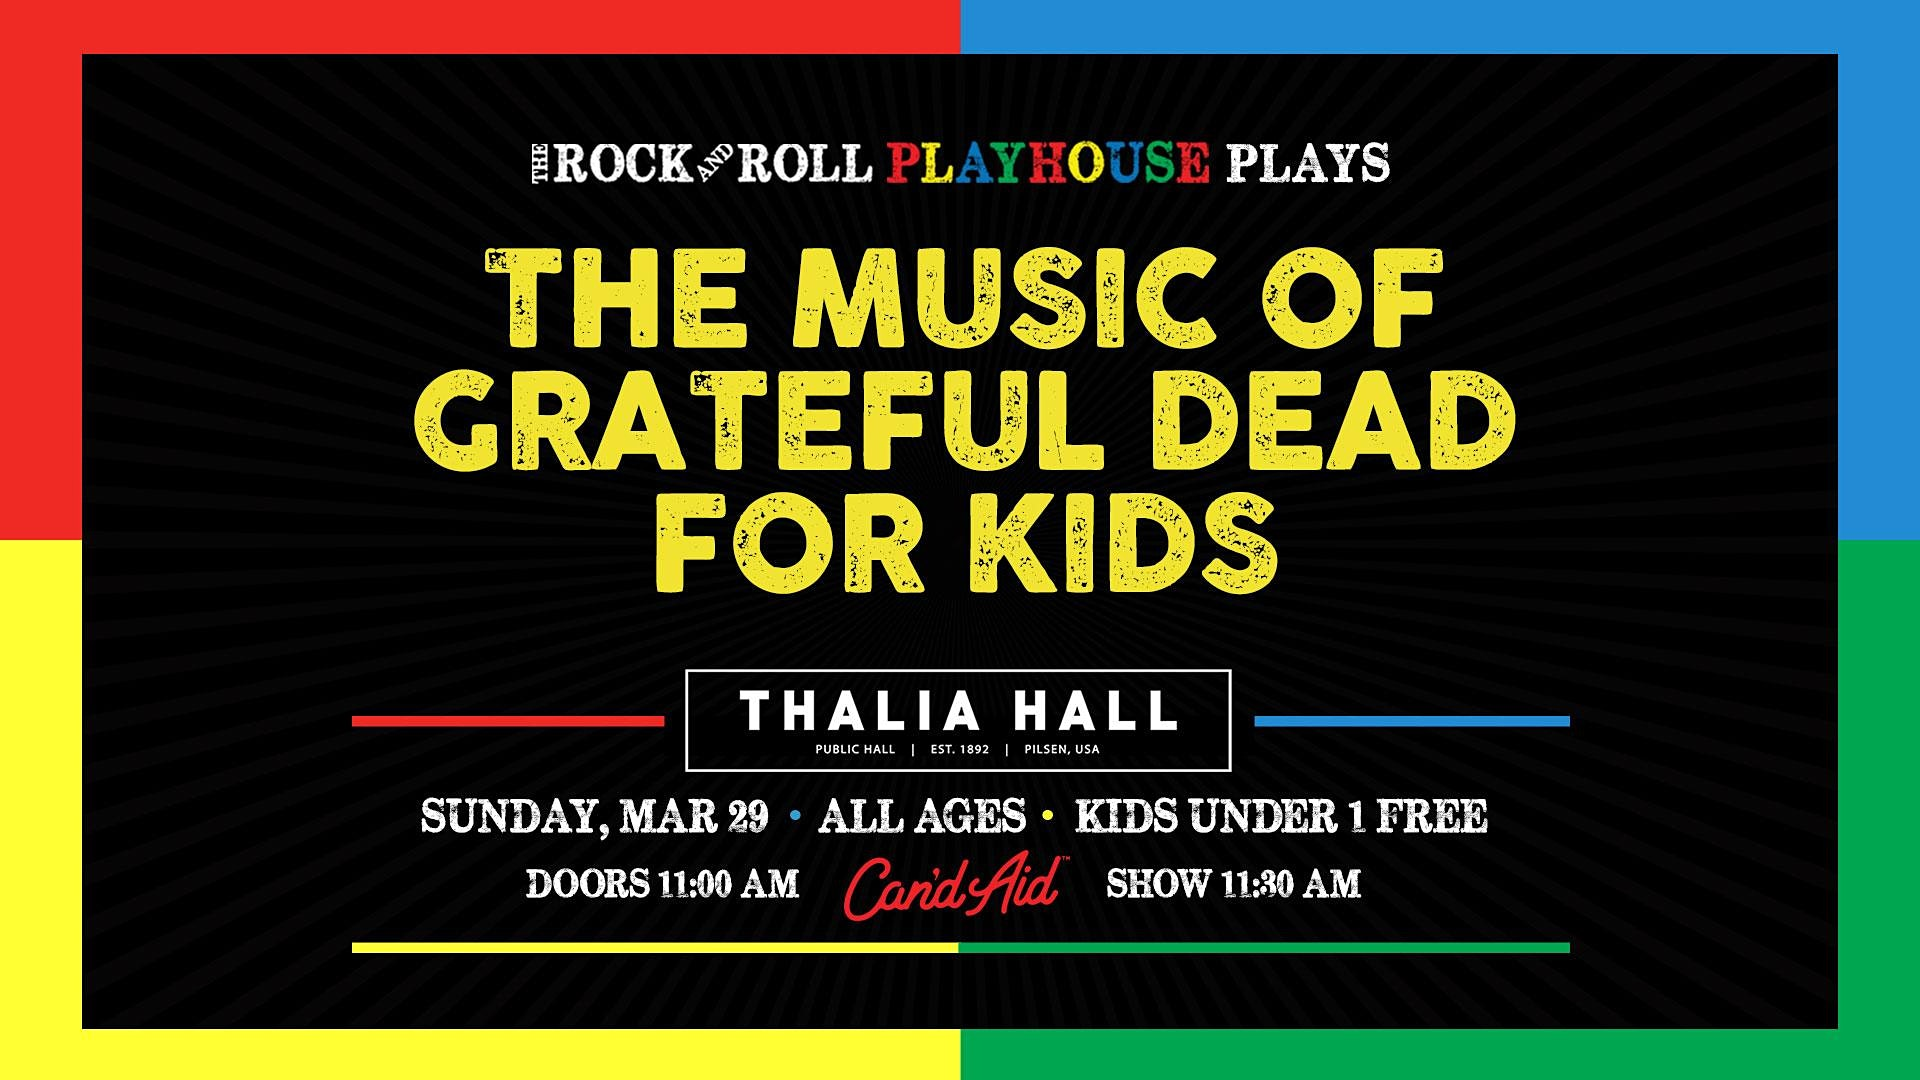 The Rock and Roll Playhouse presents The Music of Grateful Dead for Kids